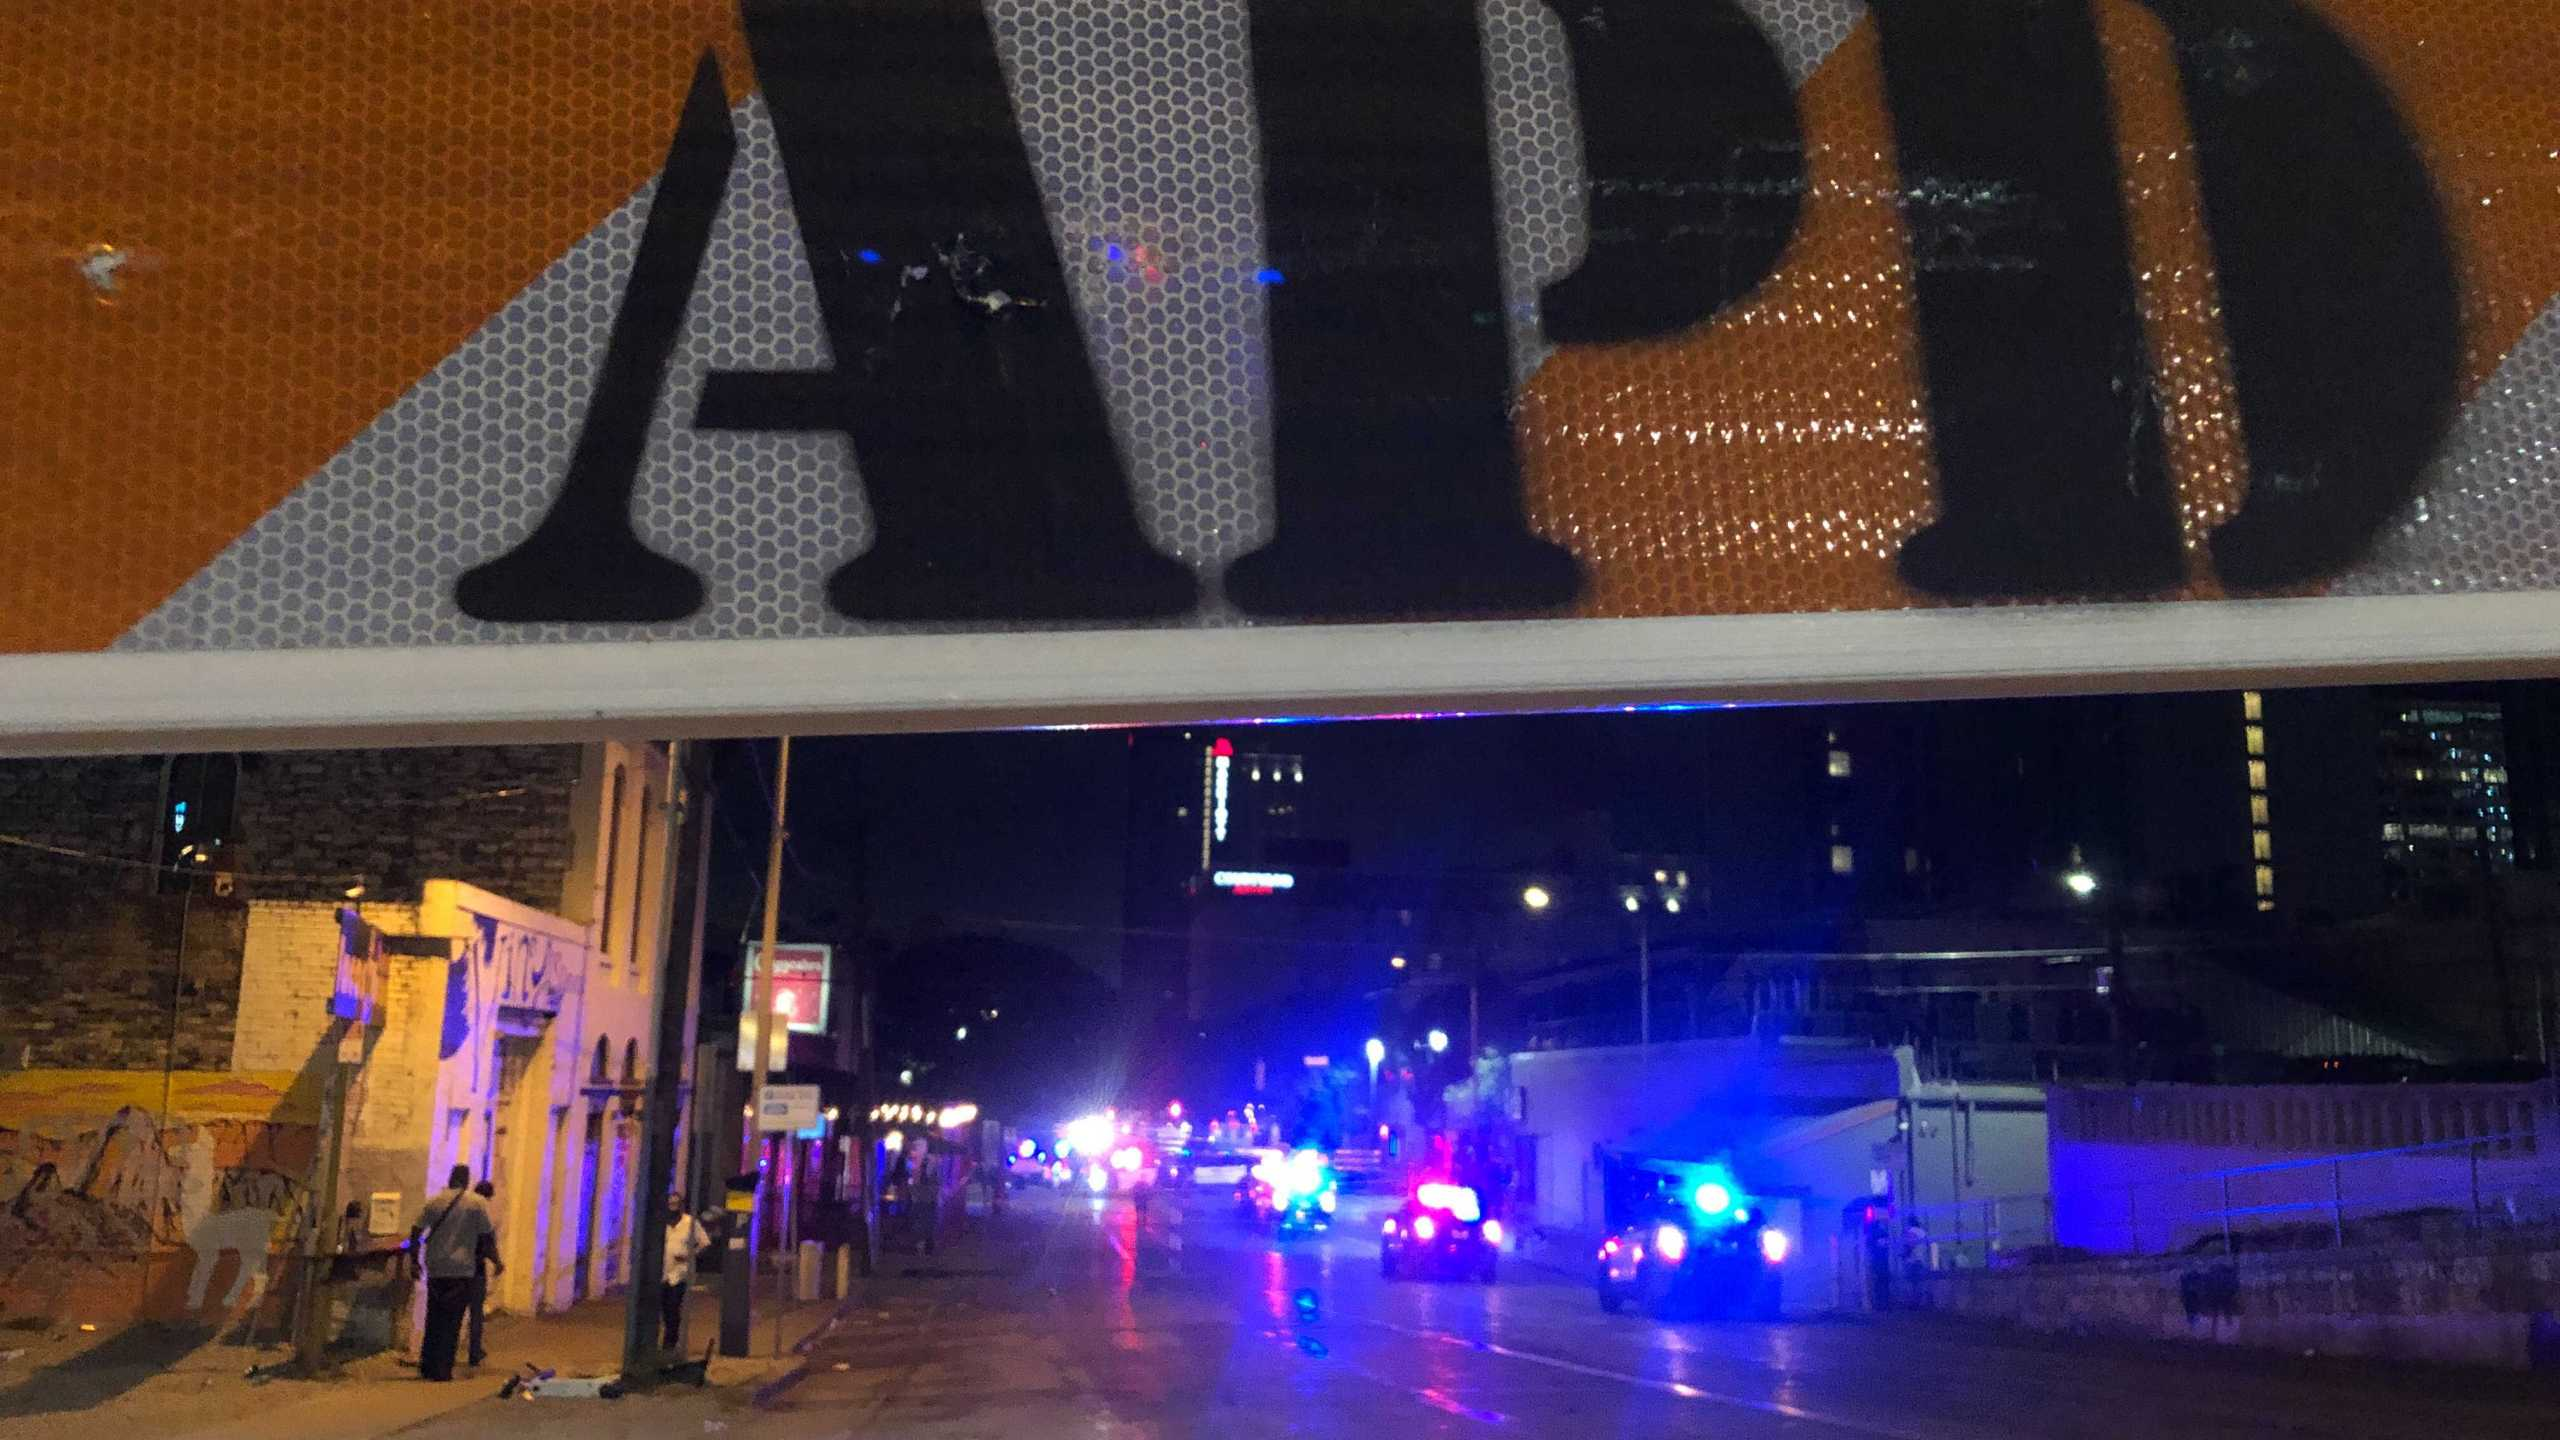 Police said a mass shooting on E. 6th Street injured at least 13 people. (KXAN photo/Frank Martinez)